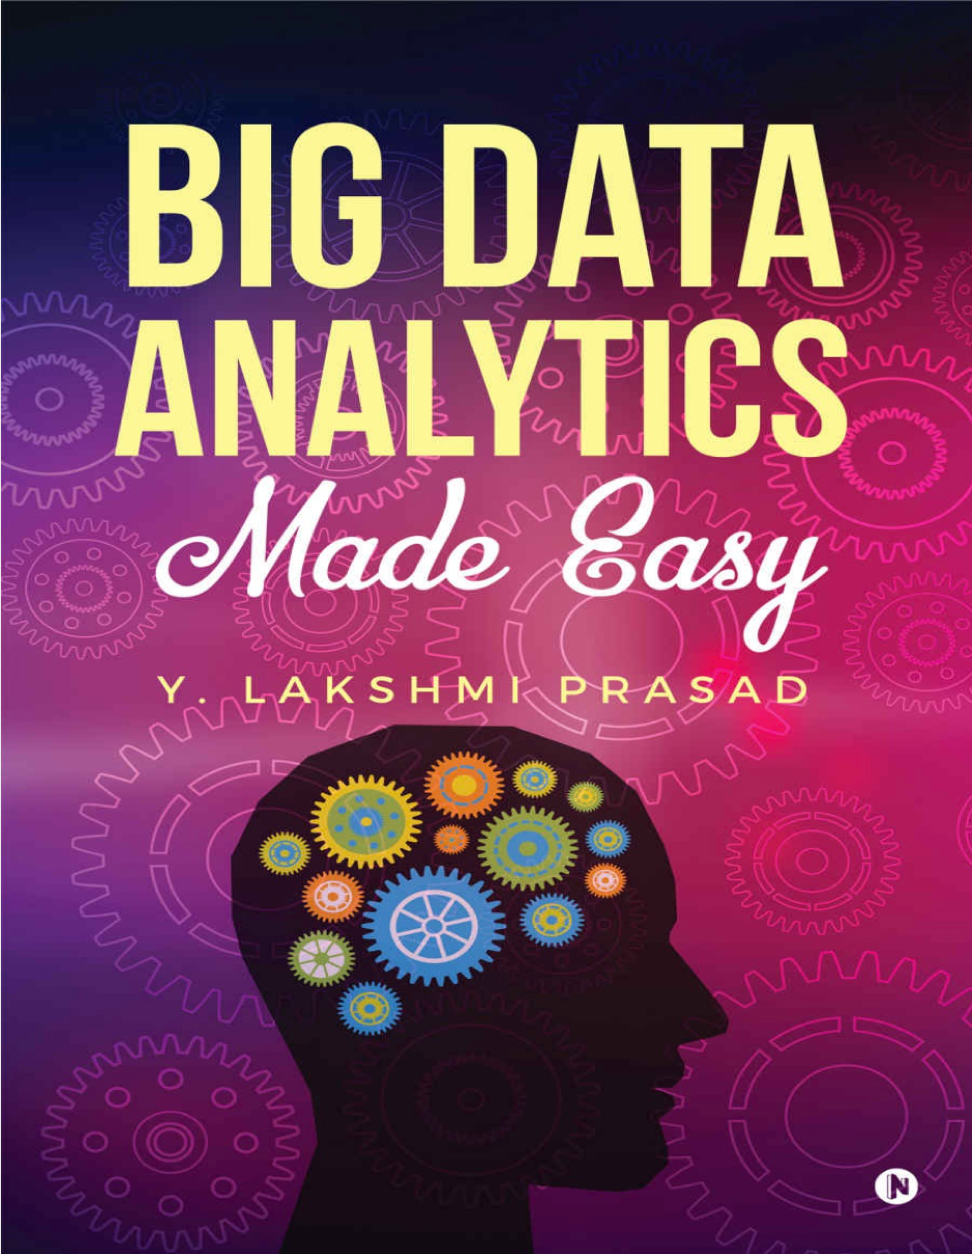 Big Data Analytics Made Easy at Social-Media.press